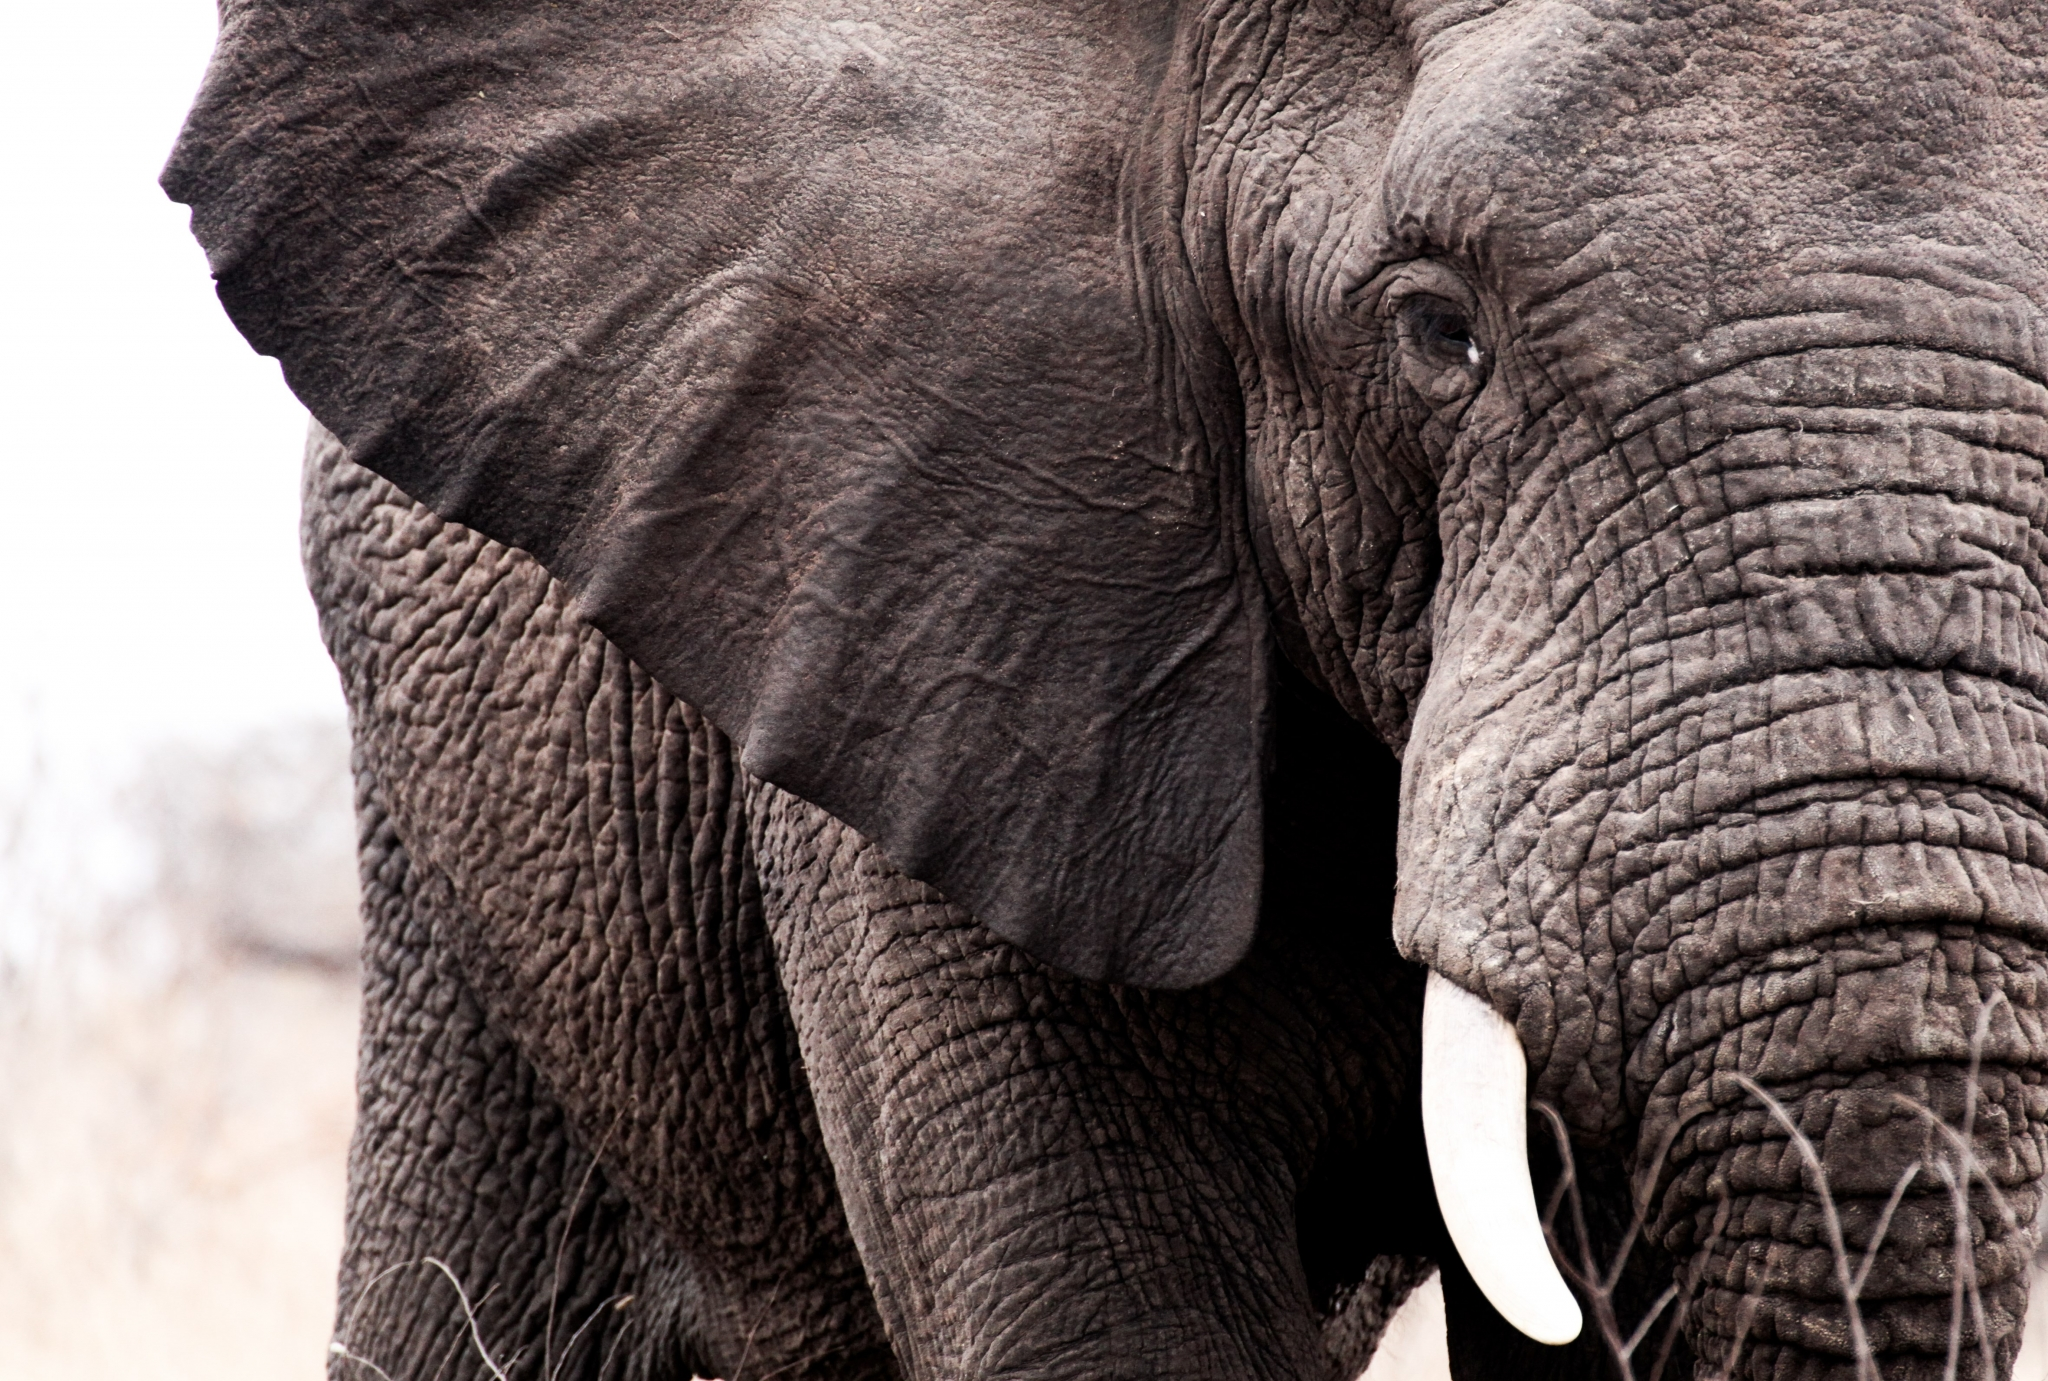 Elephant Wallpaper Hd Pack African Elephant Close Up